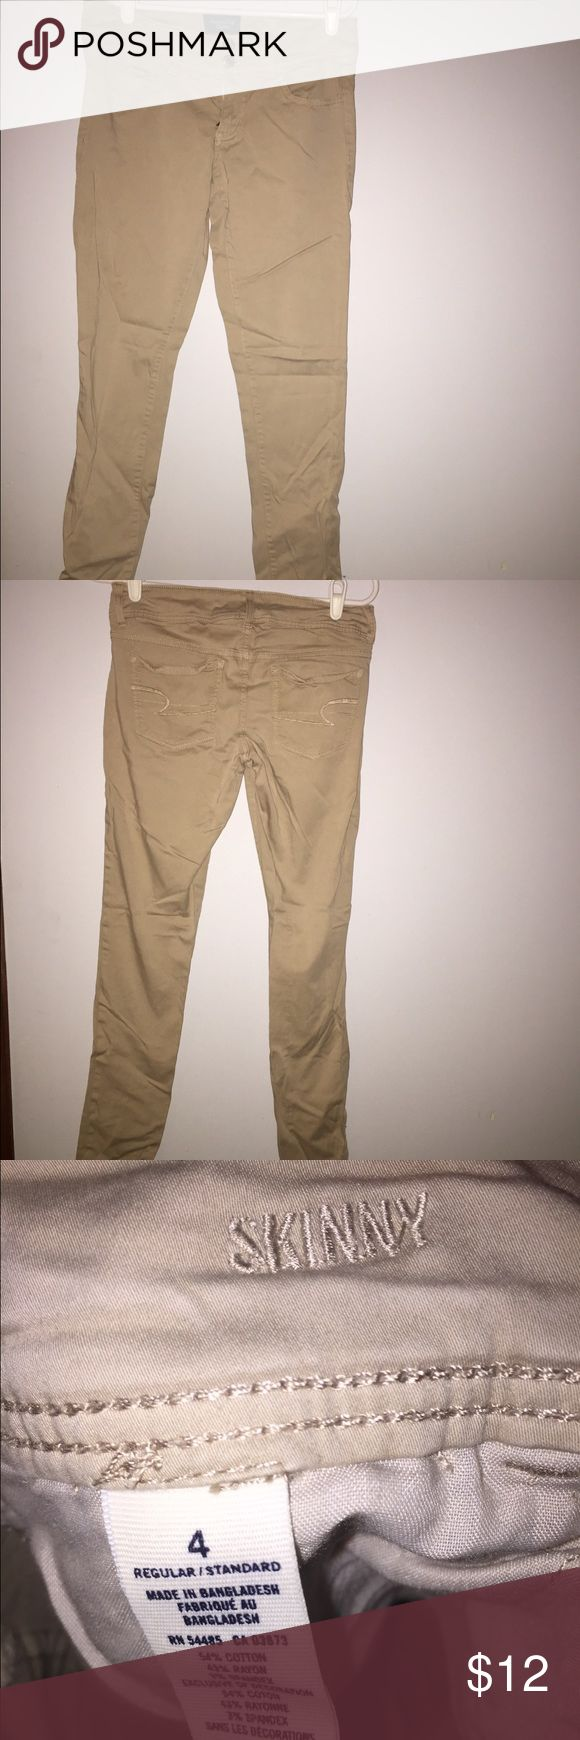 American Eagle Skinny Khaki Jeans Size 4 AE skinny khaki jeans, size 4. Barely worn & in perfect condition. Super comfy and soft, I have another pair that I wear to work every day and love. American Eagle Outfitters Jeans Skinny